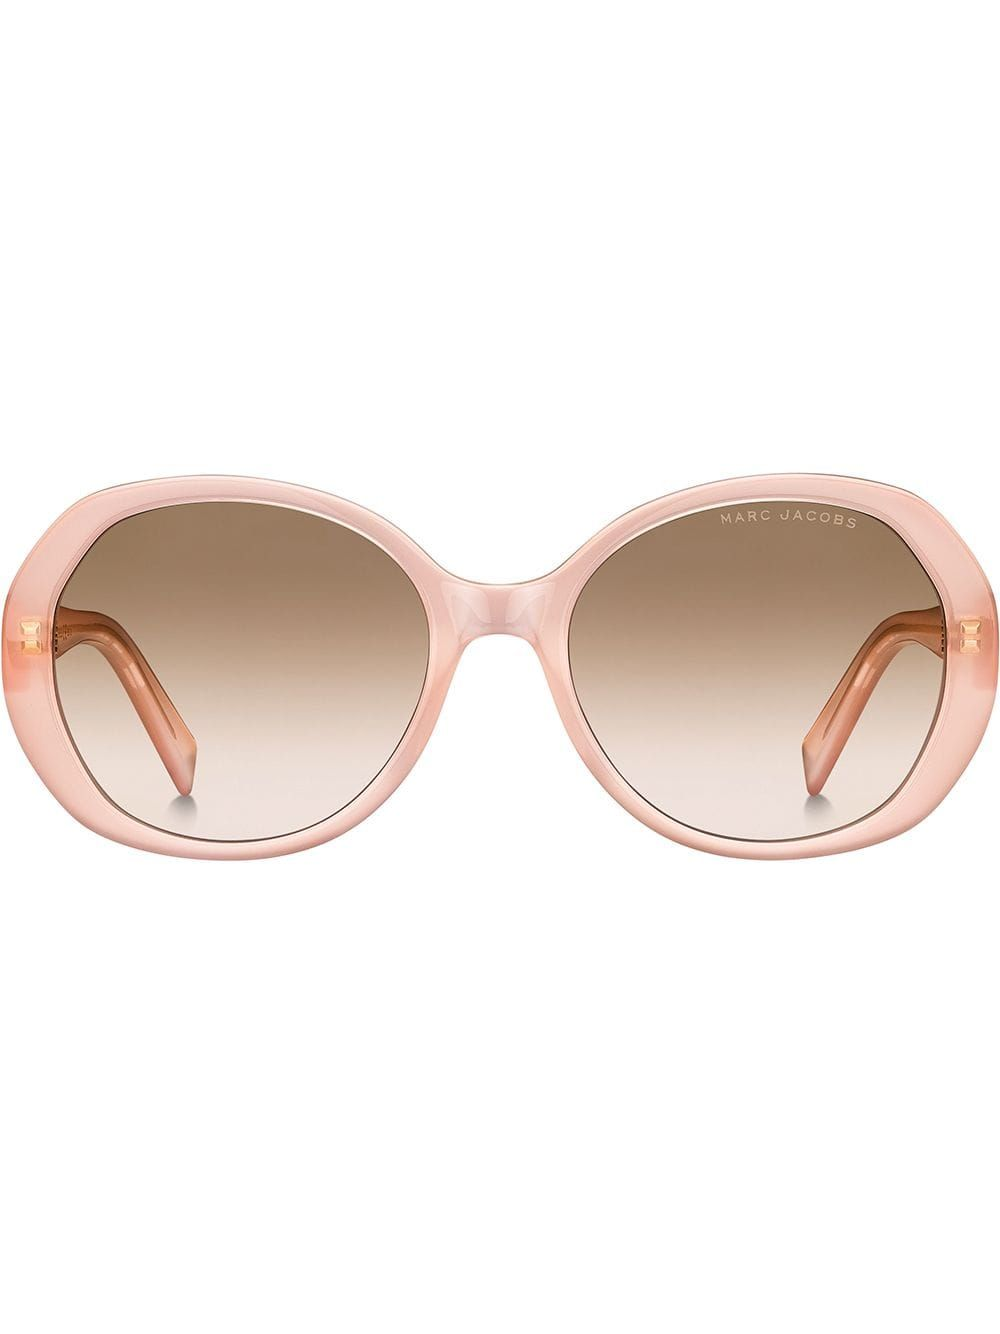 4d3ee219646f Marc Jacobs Eyewear 377/S Sunglasses in 2019 | Products | Marc ...